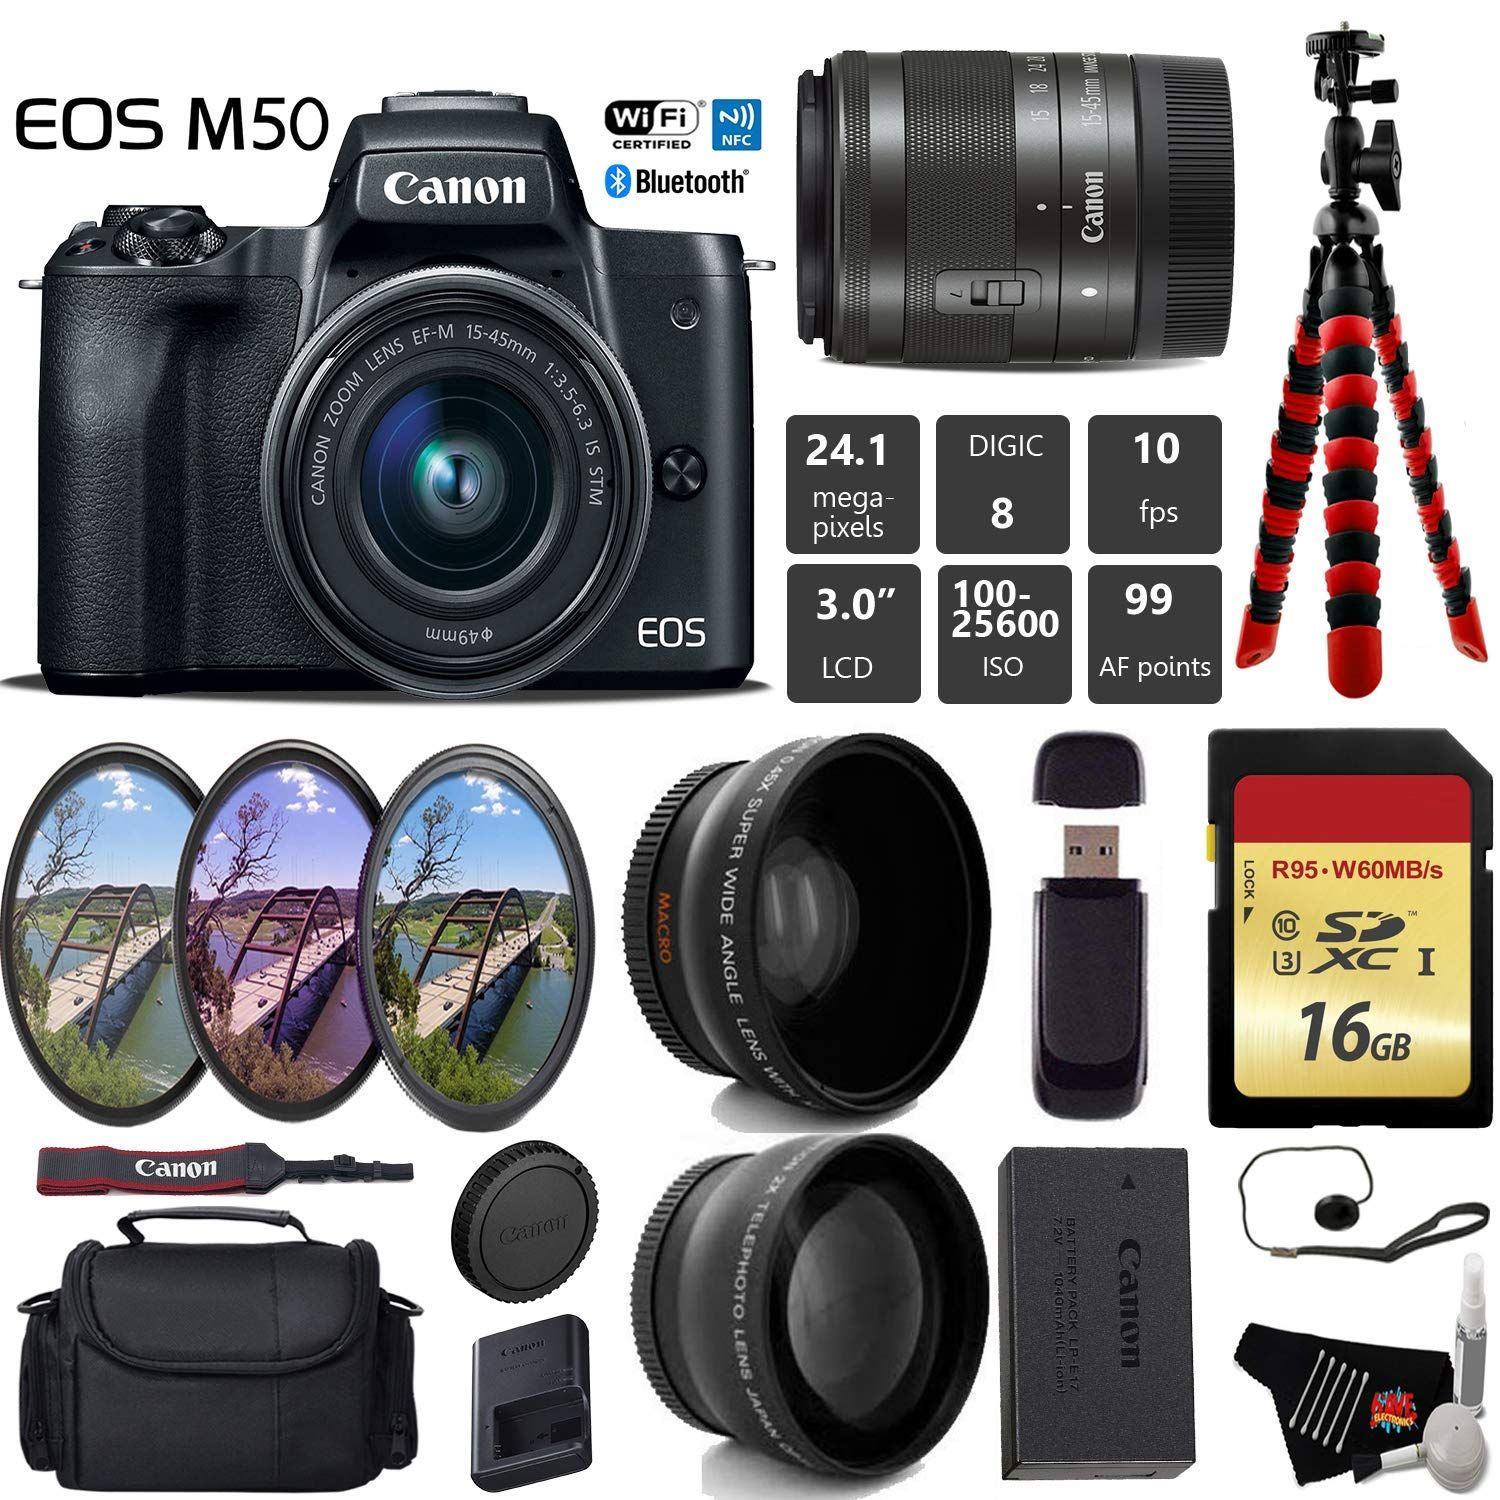 Canon Eos M50 Mirrorless Digital Camera With 15 45mm Lens Uv Fld Cpl Filter Kit Wide Angle Telephoto Lens Camera Walmart Com In 2021 Mirrorless Camera Photography Digital Camera Camera Lens